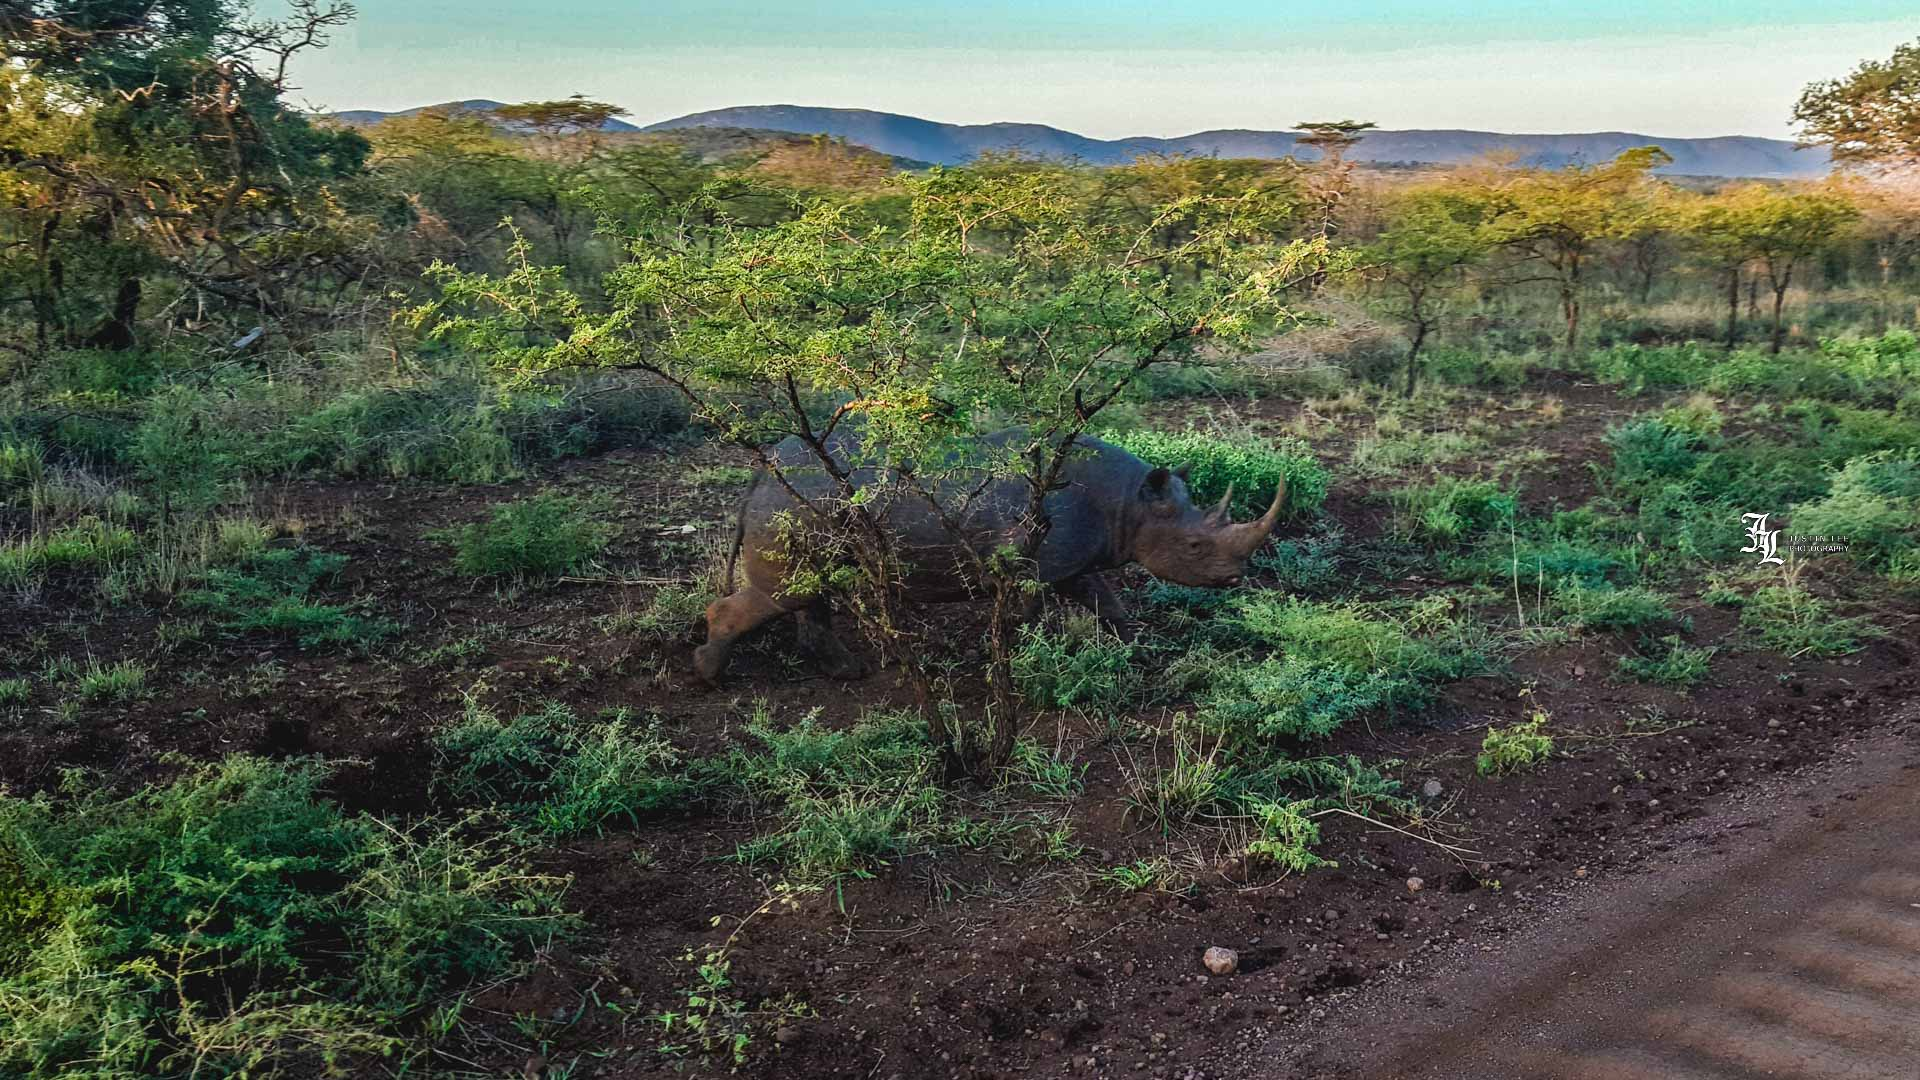 Such a special sight to see a full gown 2 ton male Black Rhino with it's horn still attached,